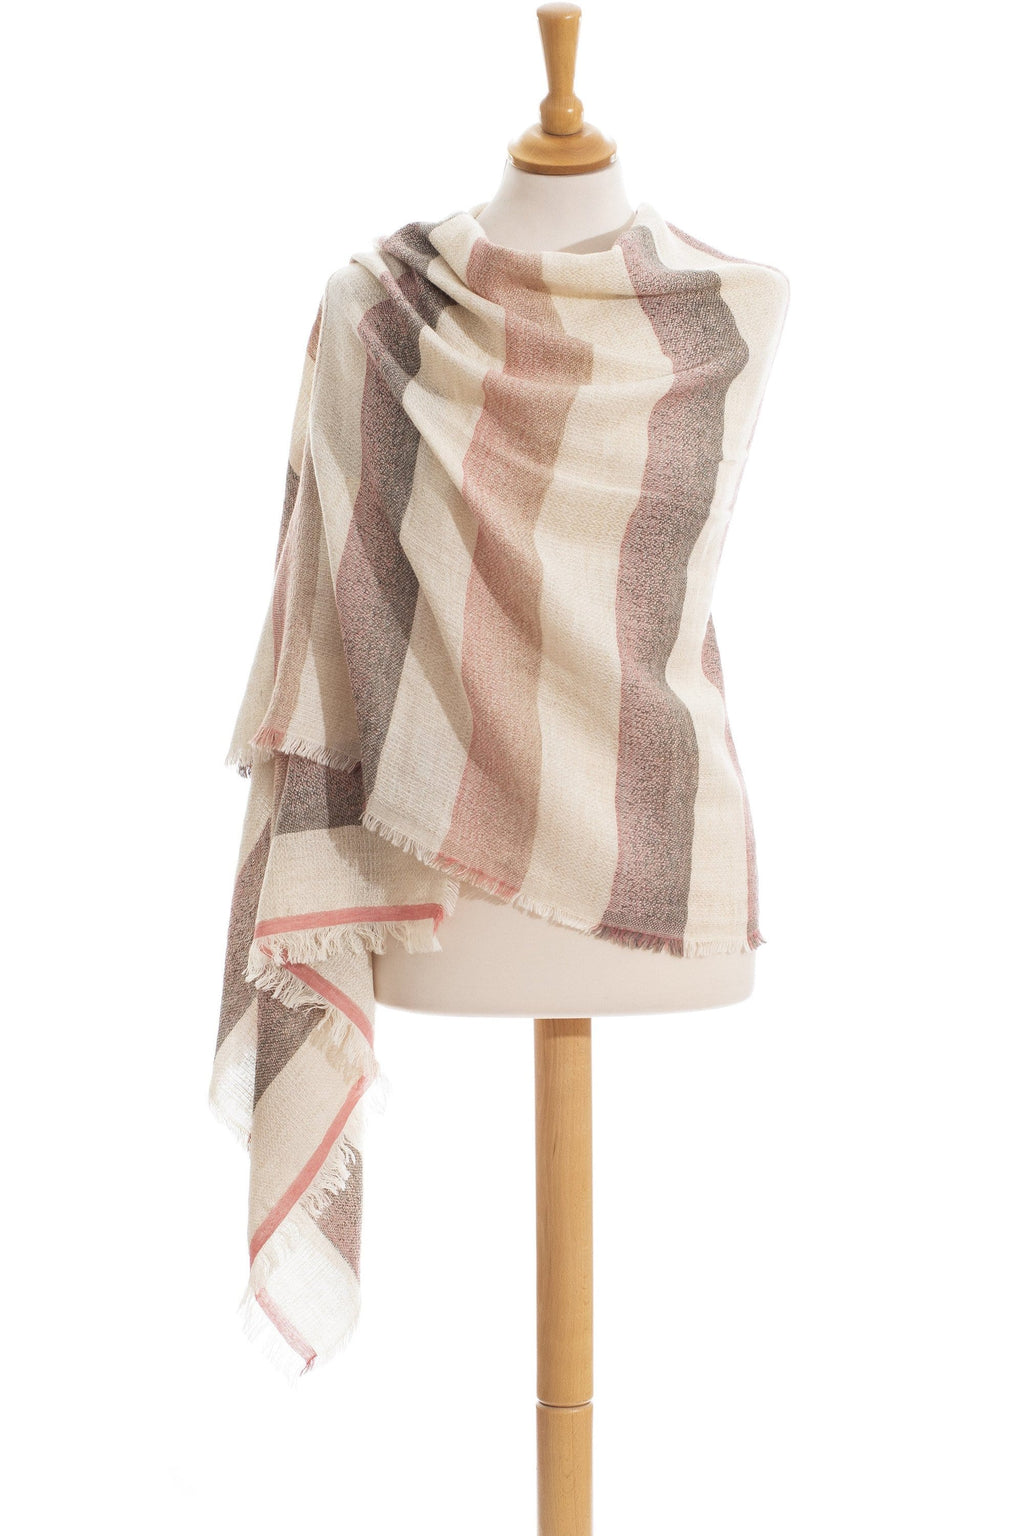 Sunset Crush wool and cotton stole scarf - Himelhoch's